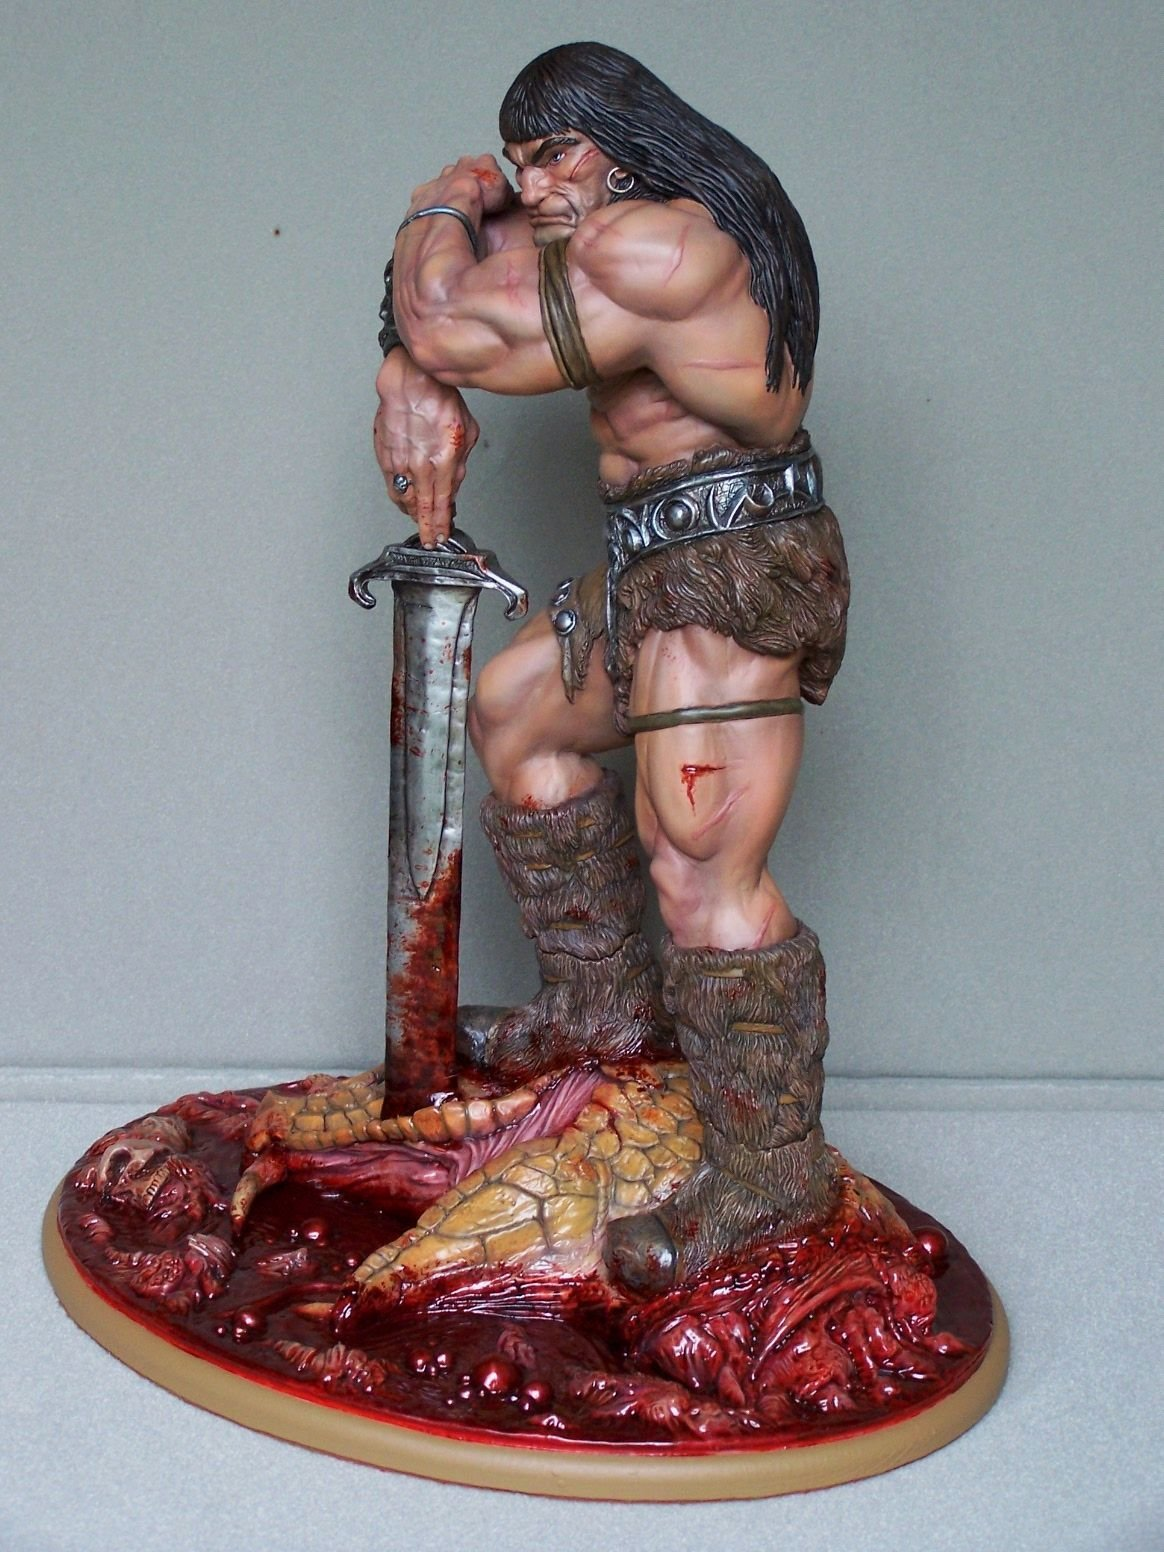 Sheridan doose conan savage snake slayer 18